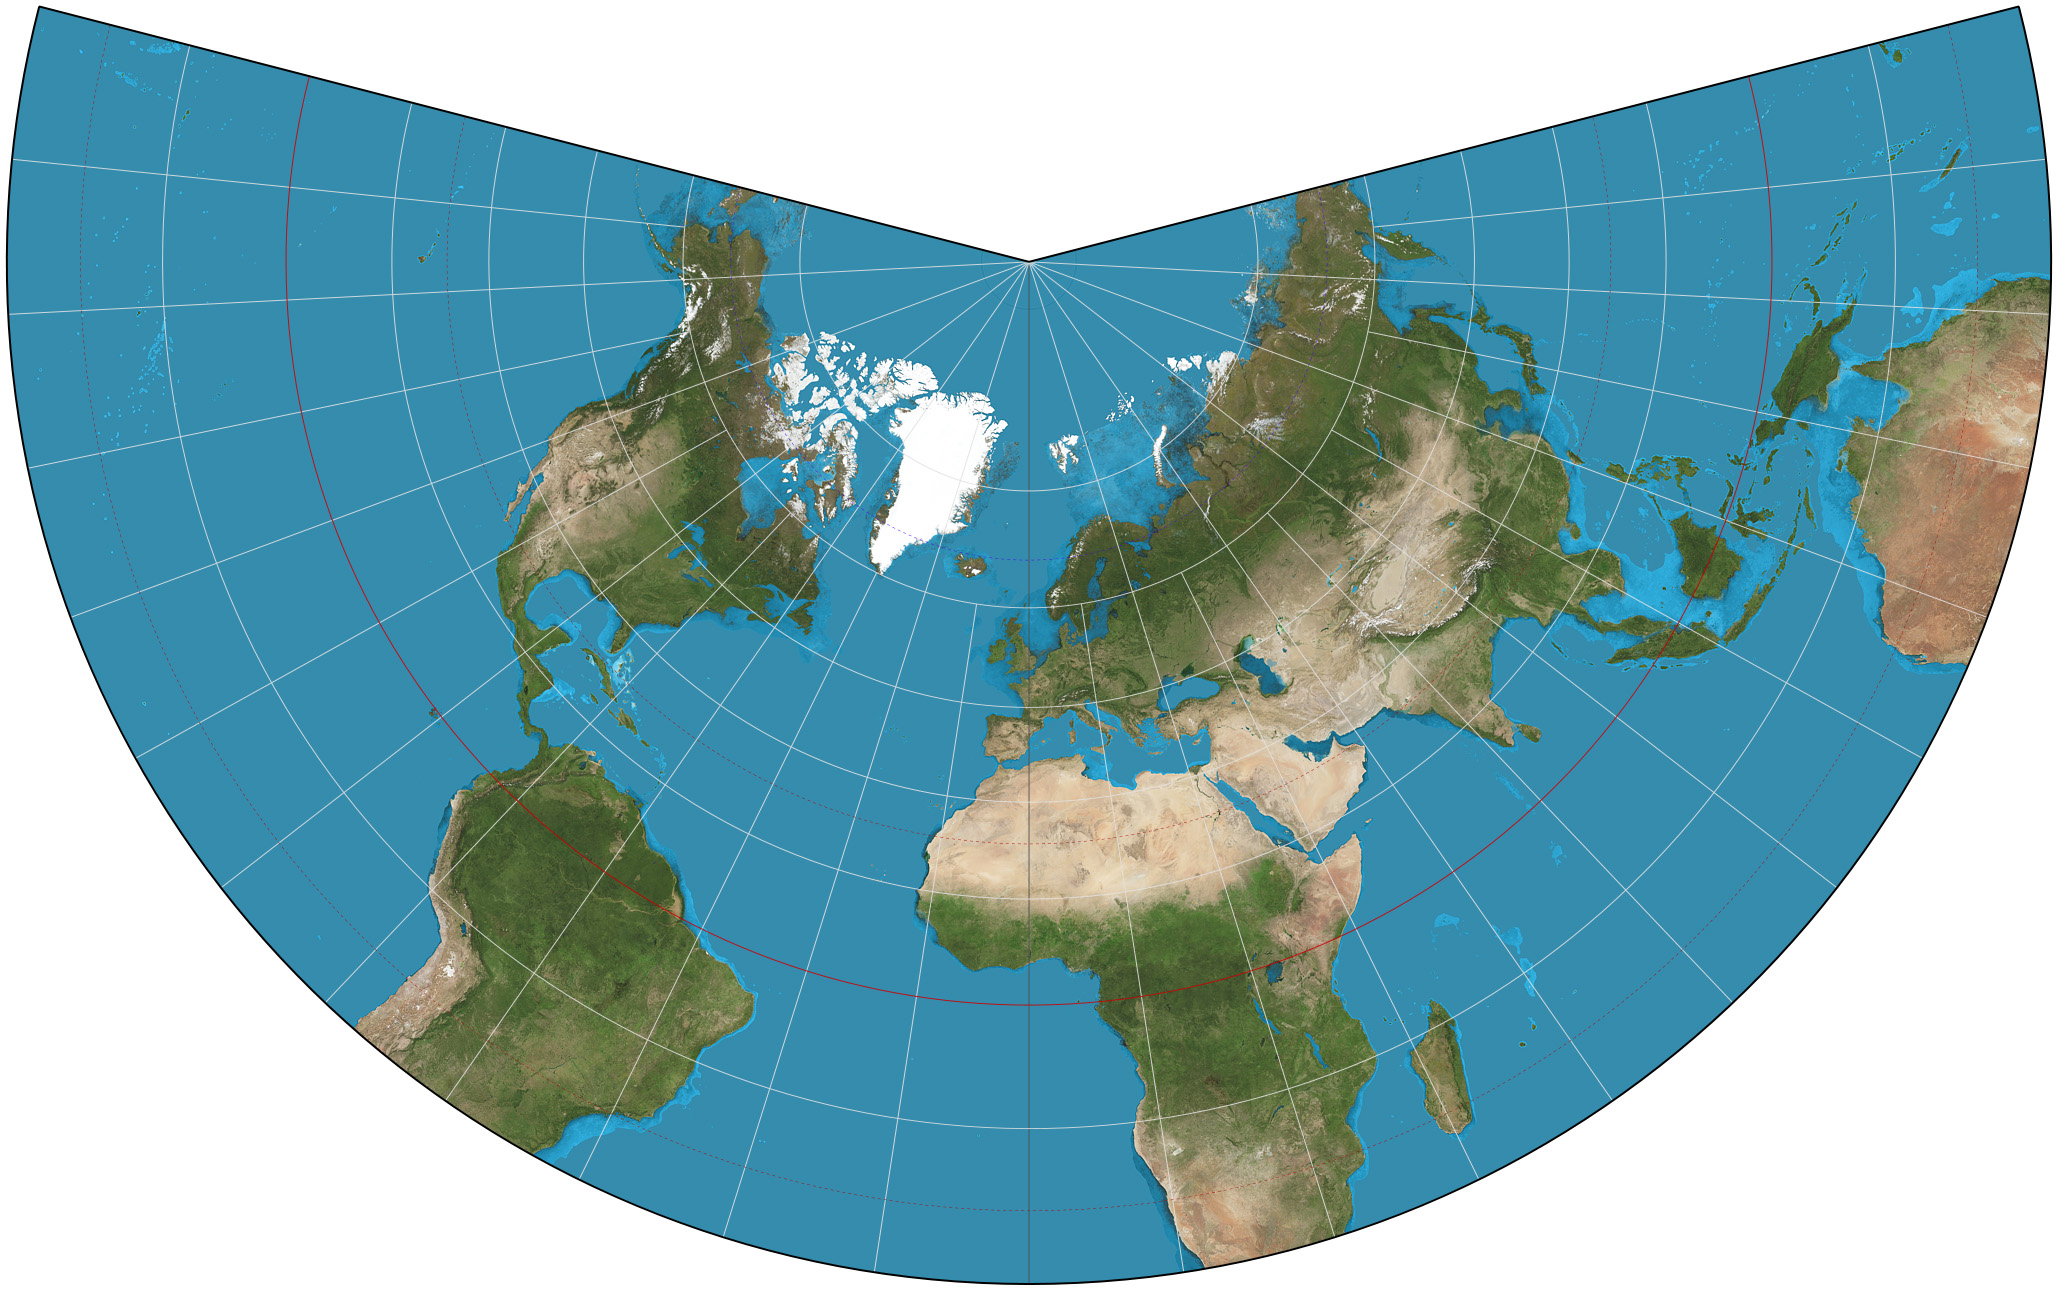 Lambert conformal conic projection   Wikipedia